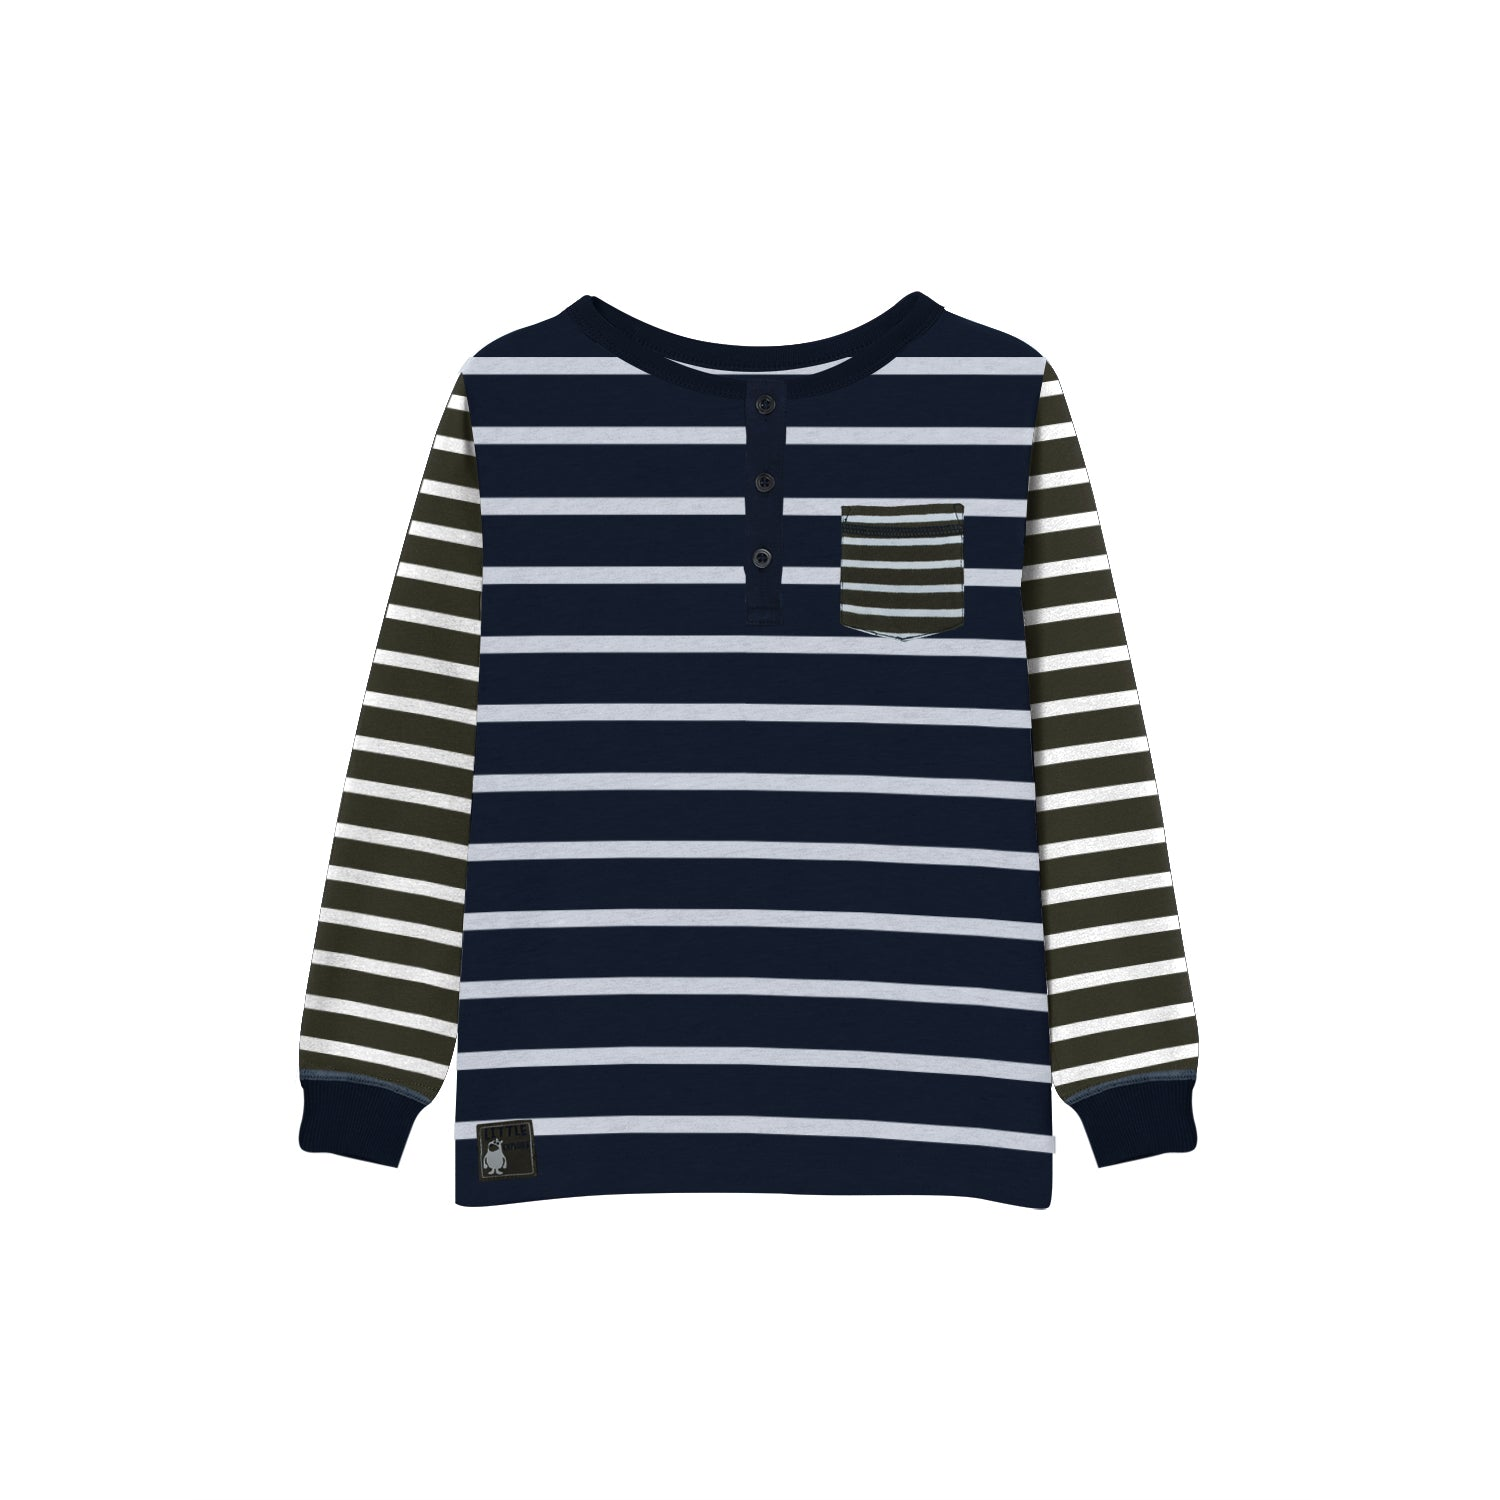 NEXT Single Jersey Henley Long Sleeve Shirt For Kids-Navy & Olive with Stripe-BE9377